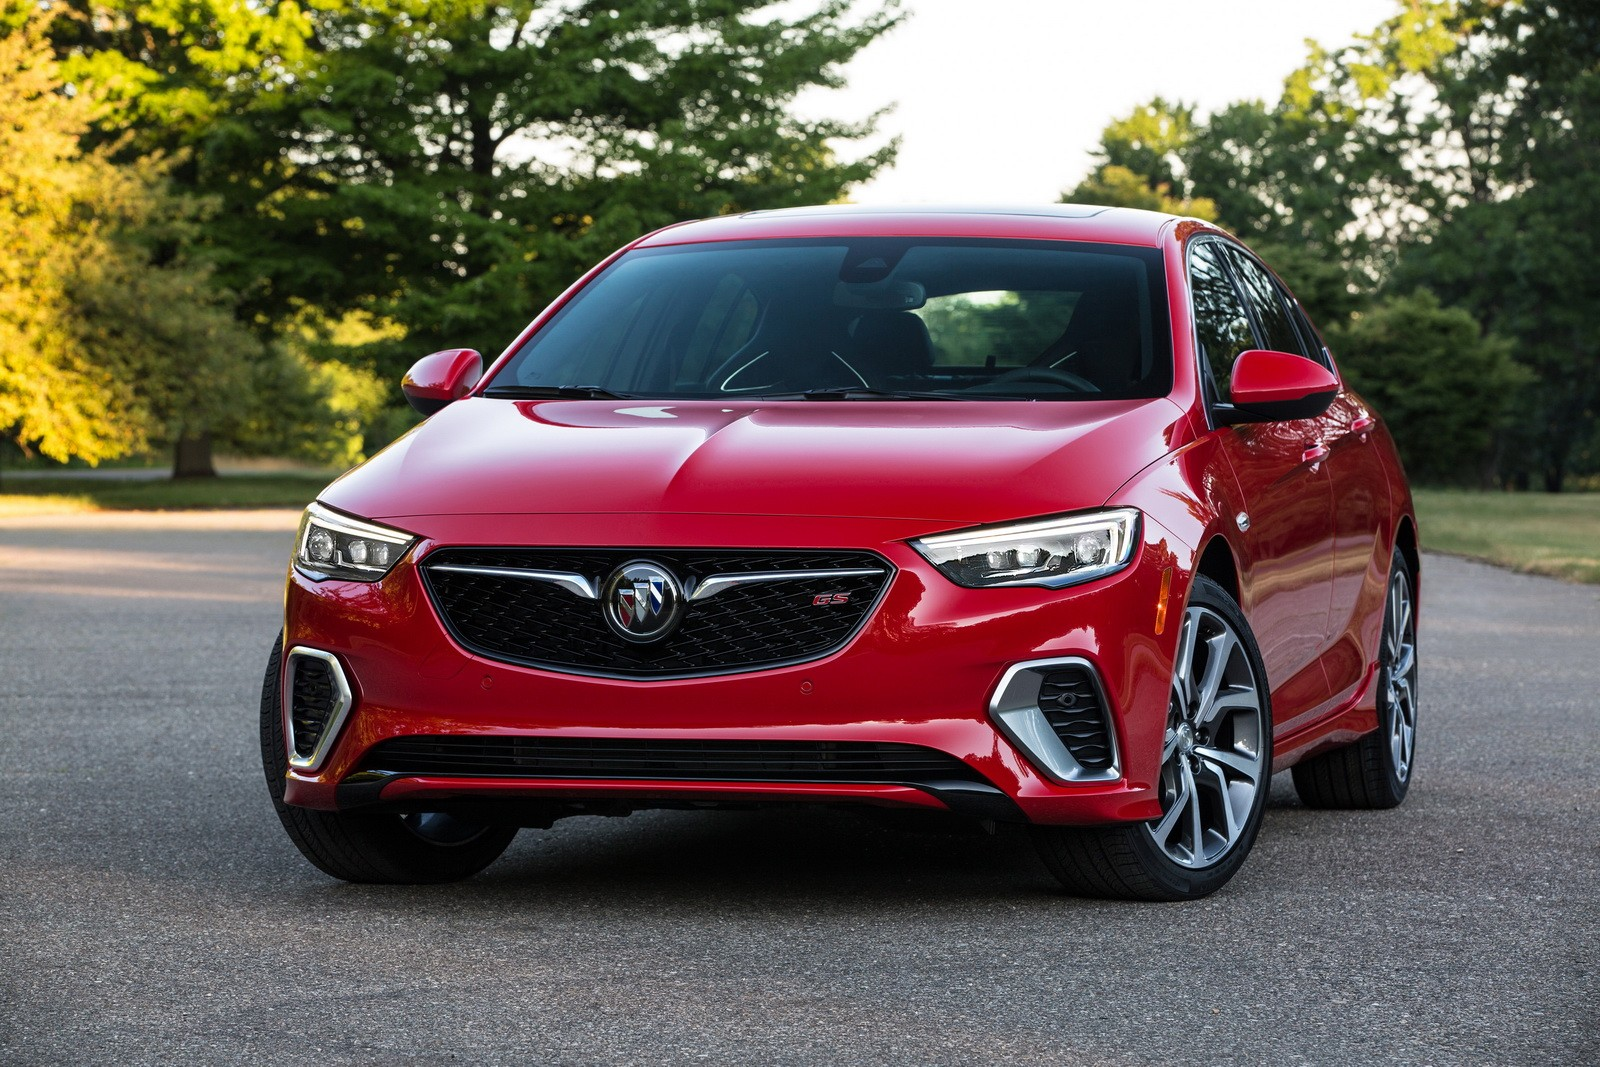 Honda Awd Sedan >> 2018 Buick Regal GS Revealed, Has 310 HP 3.6-Liter V6 and AWD - autoevolution